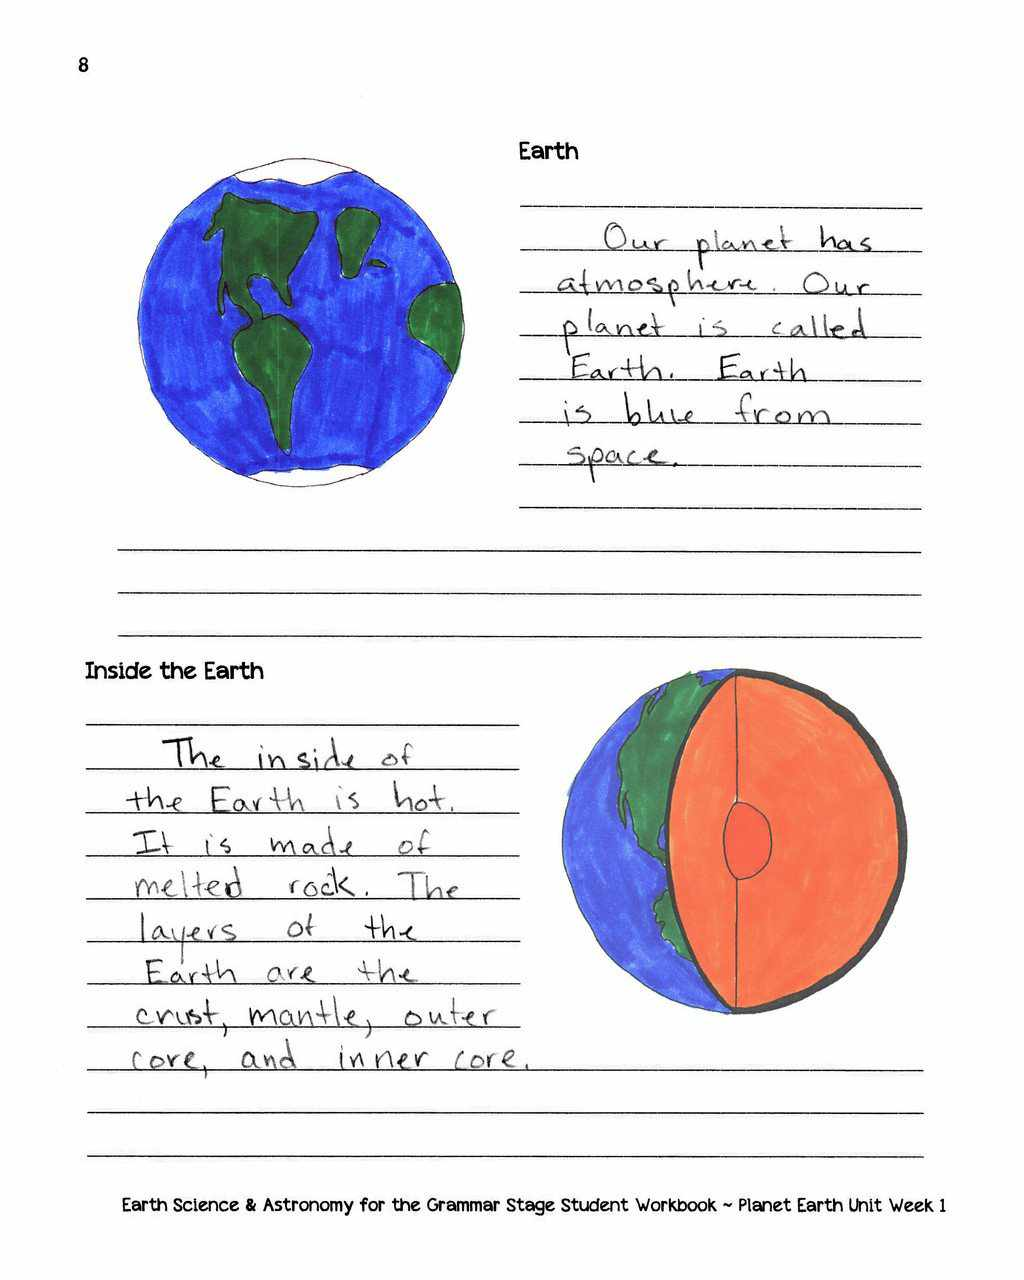 Earth Sciences: Earth Science And Astronomy For The Grammar Stage (ebook